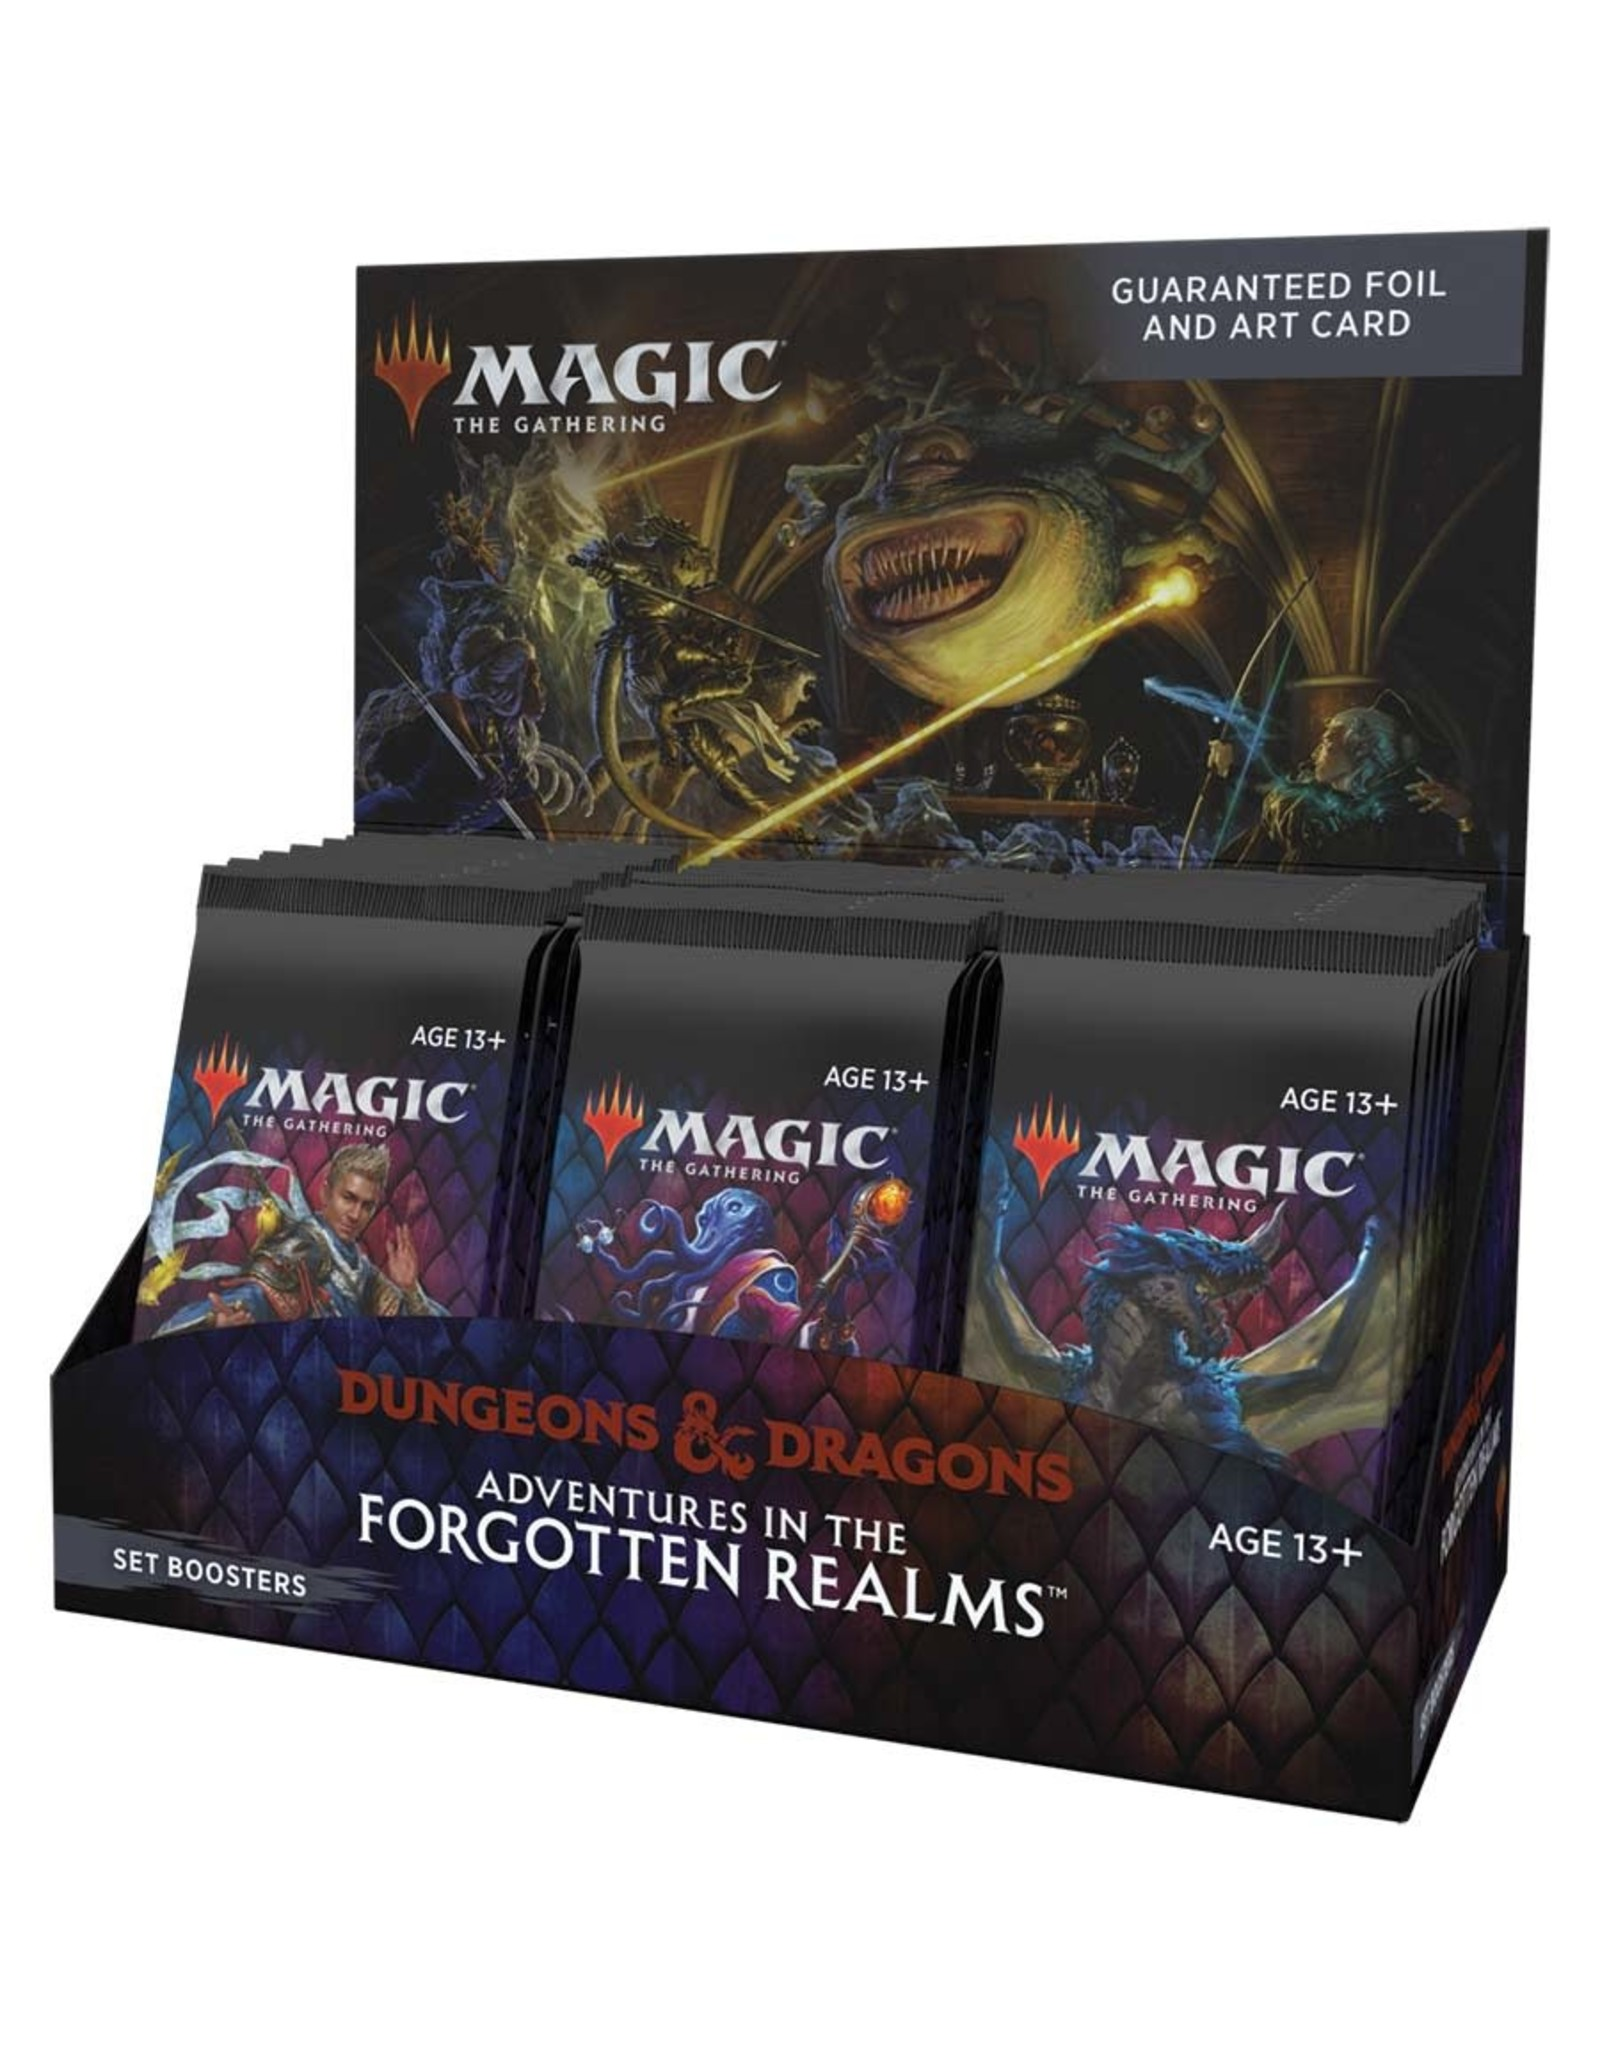 WIZARDS OF THE COAST MTG ADVENTURES IN THE FORGOTTEN REALMS SET BOOSTER BOX PRE-ORDER